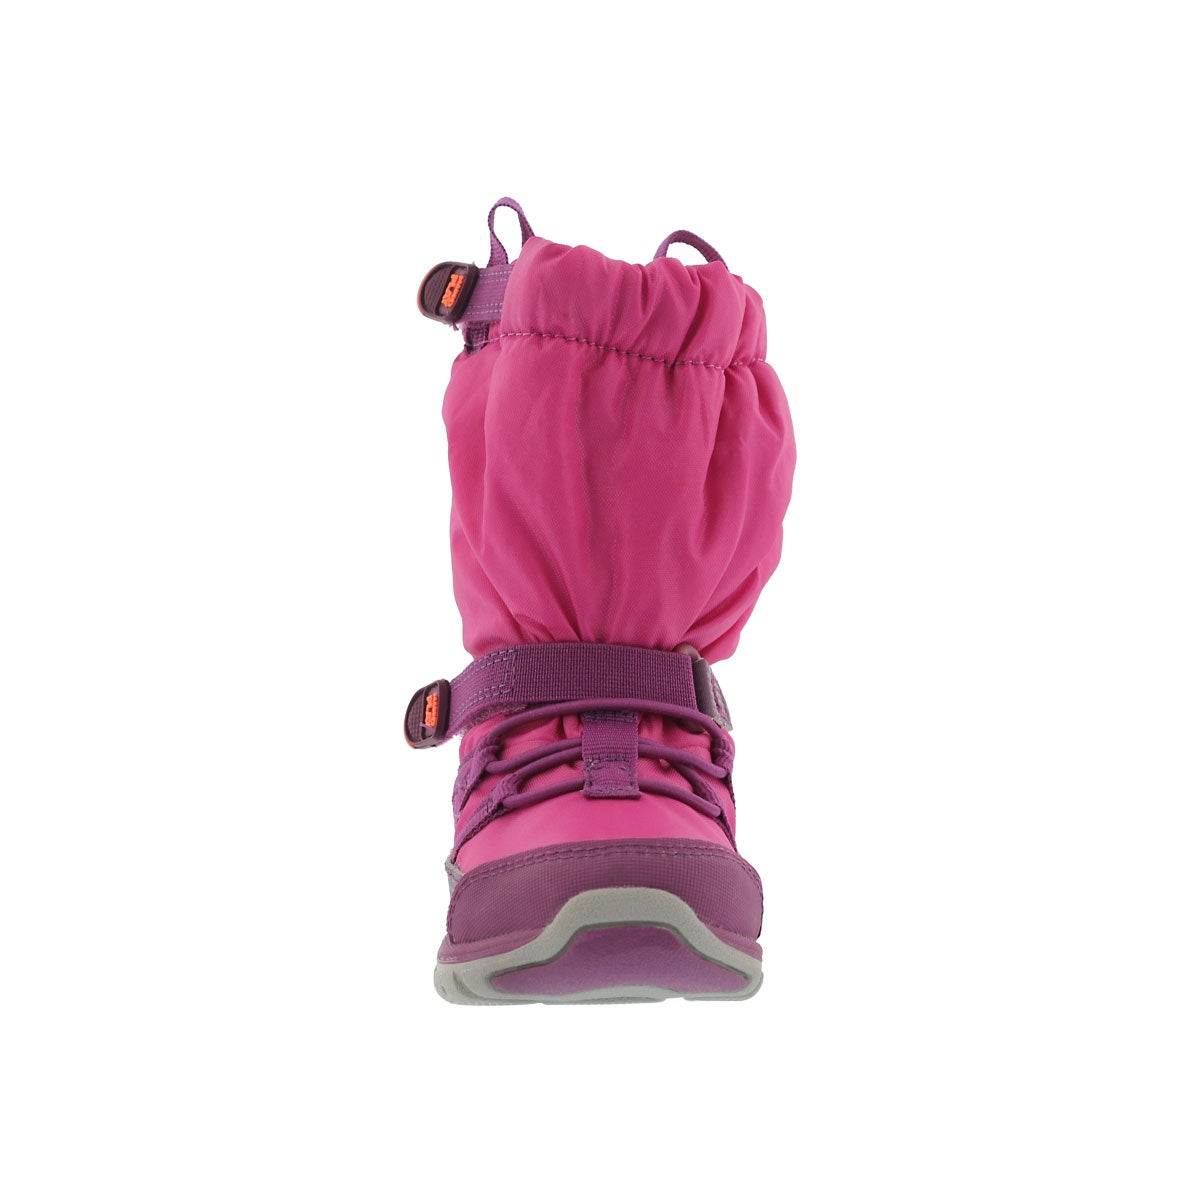 Inf M2P Sneaker Boot pink winter boot